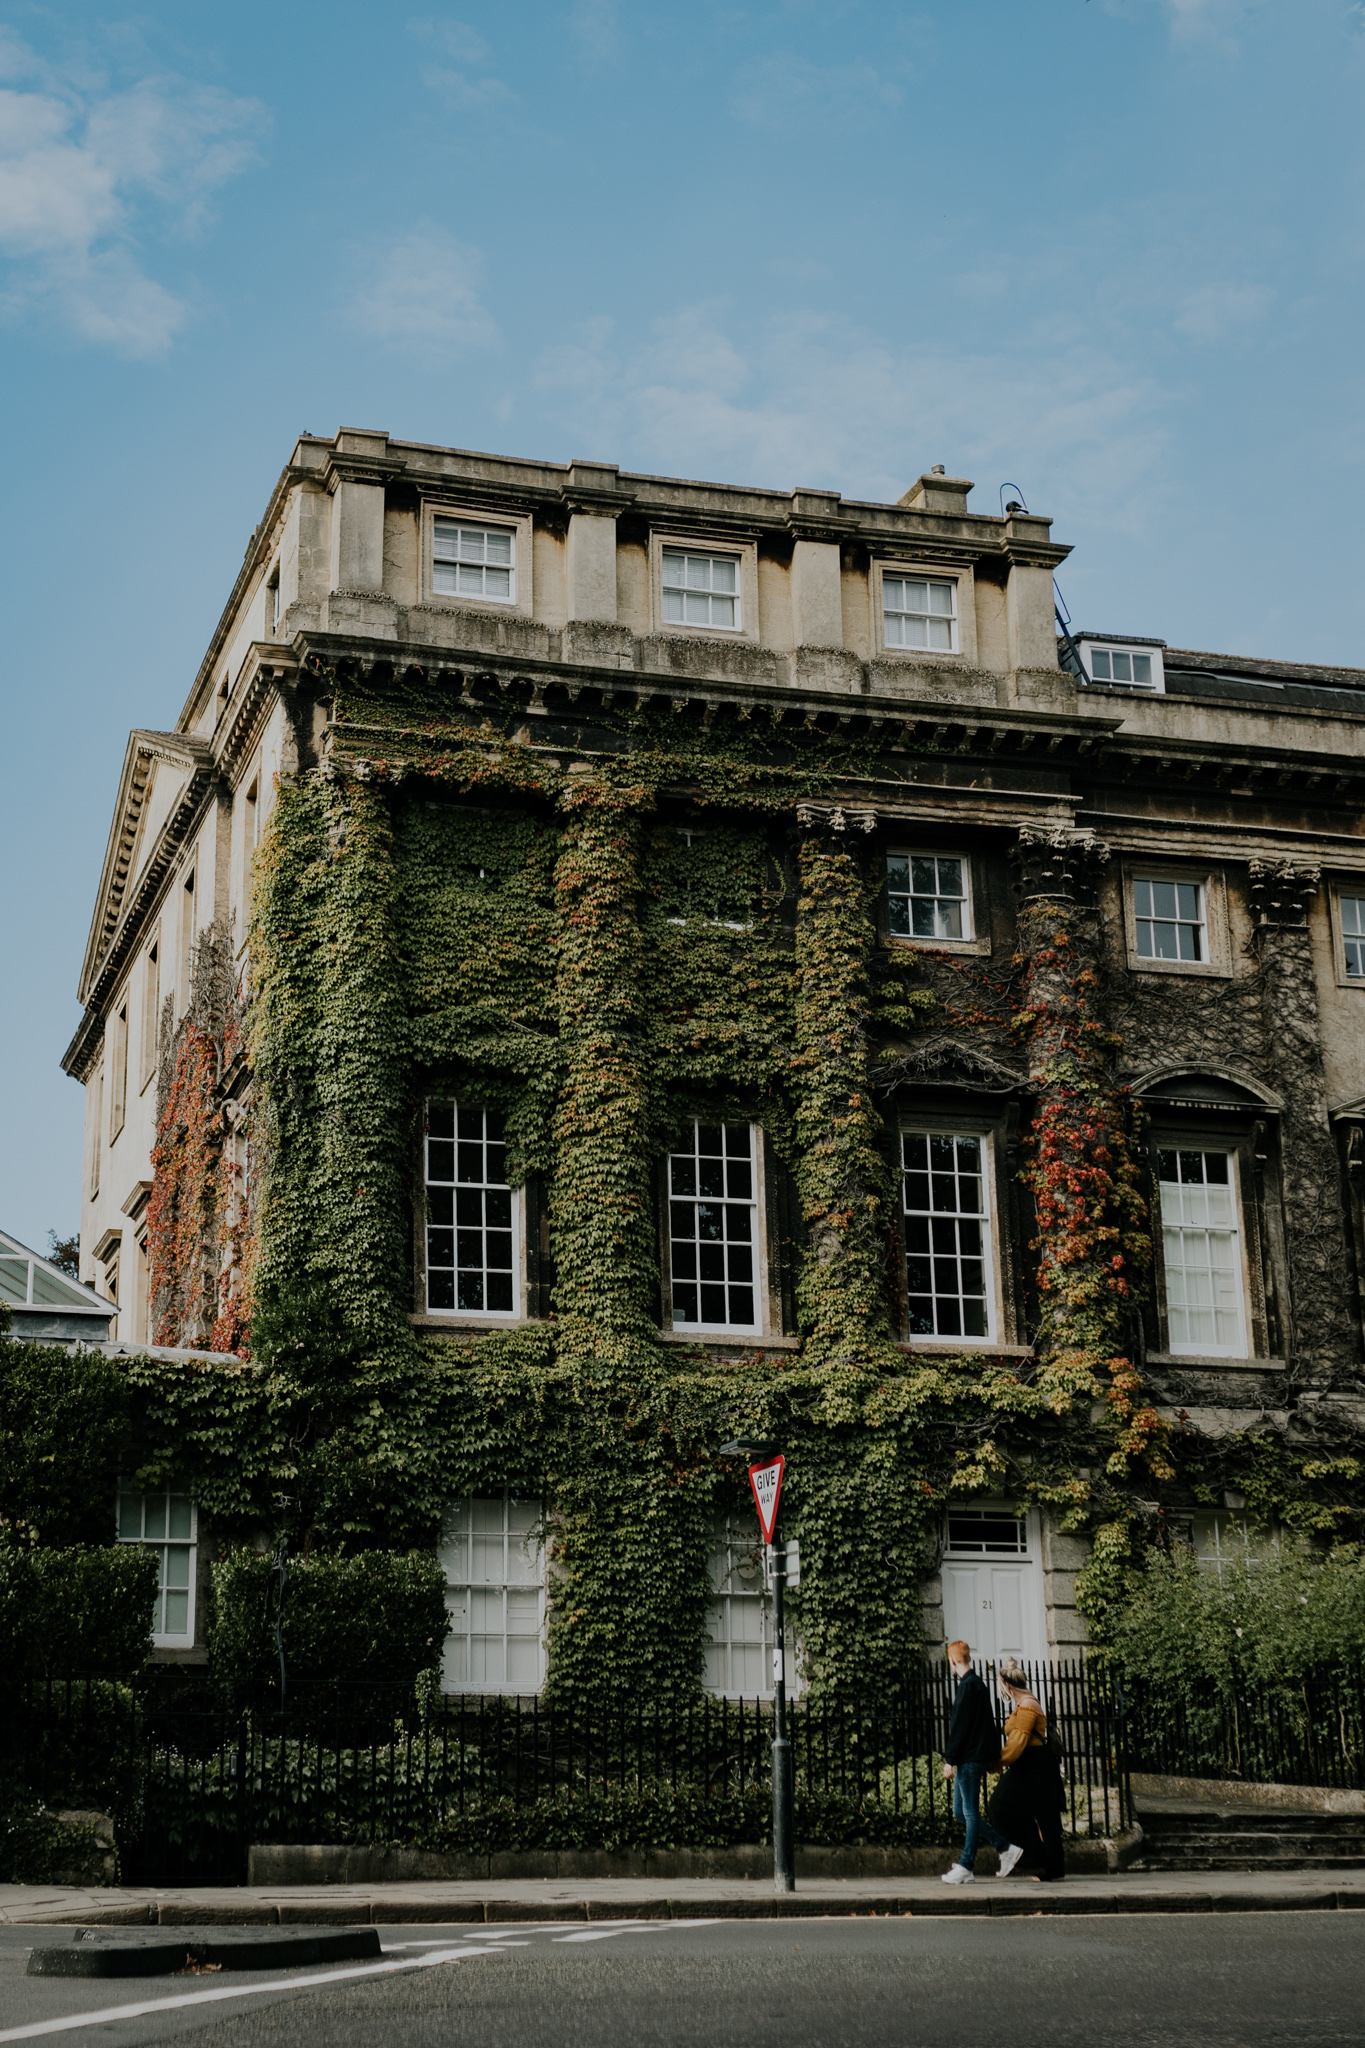 This old building in Bath was a phenomenal passing by. If only you could stop in the middle of the road, I would have more time to explore this charming house.